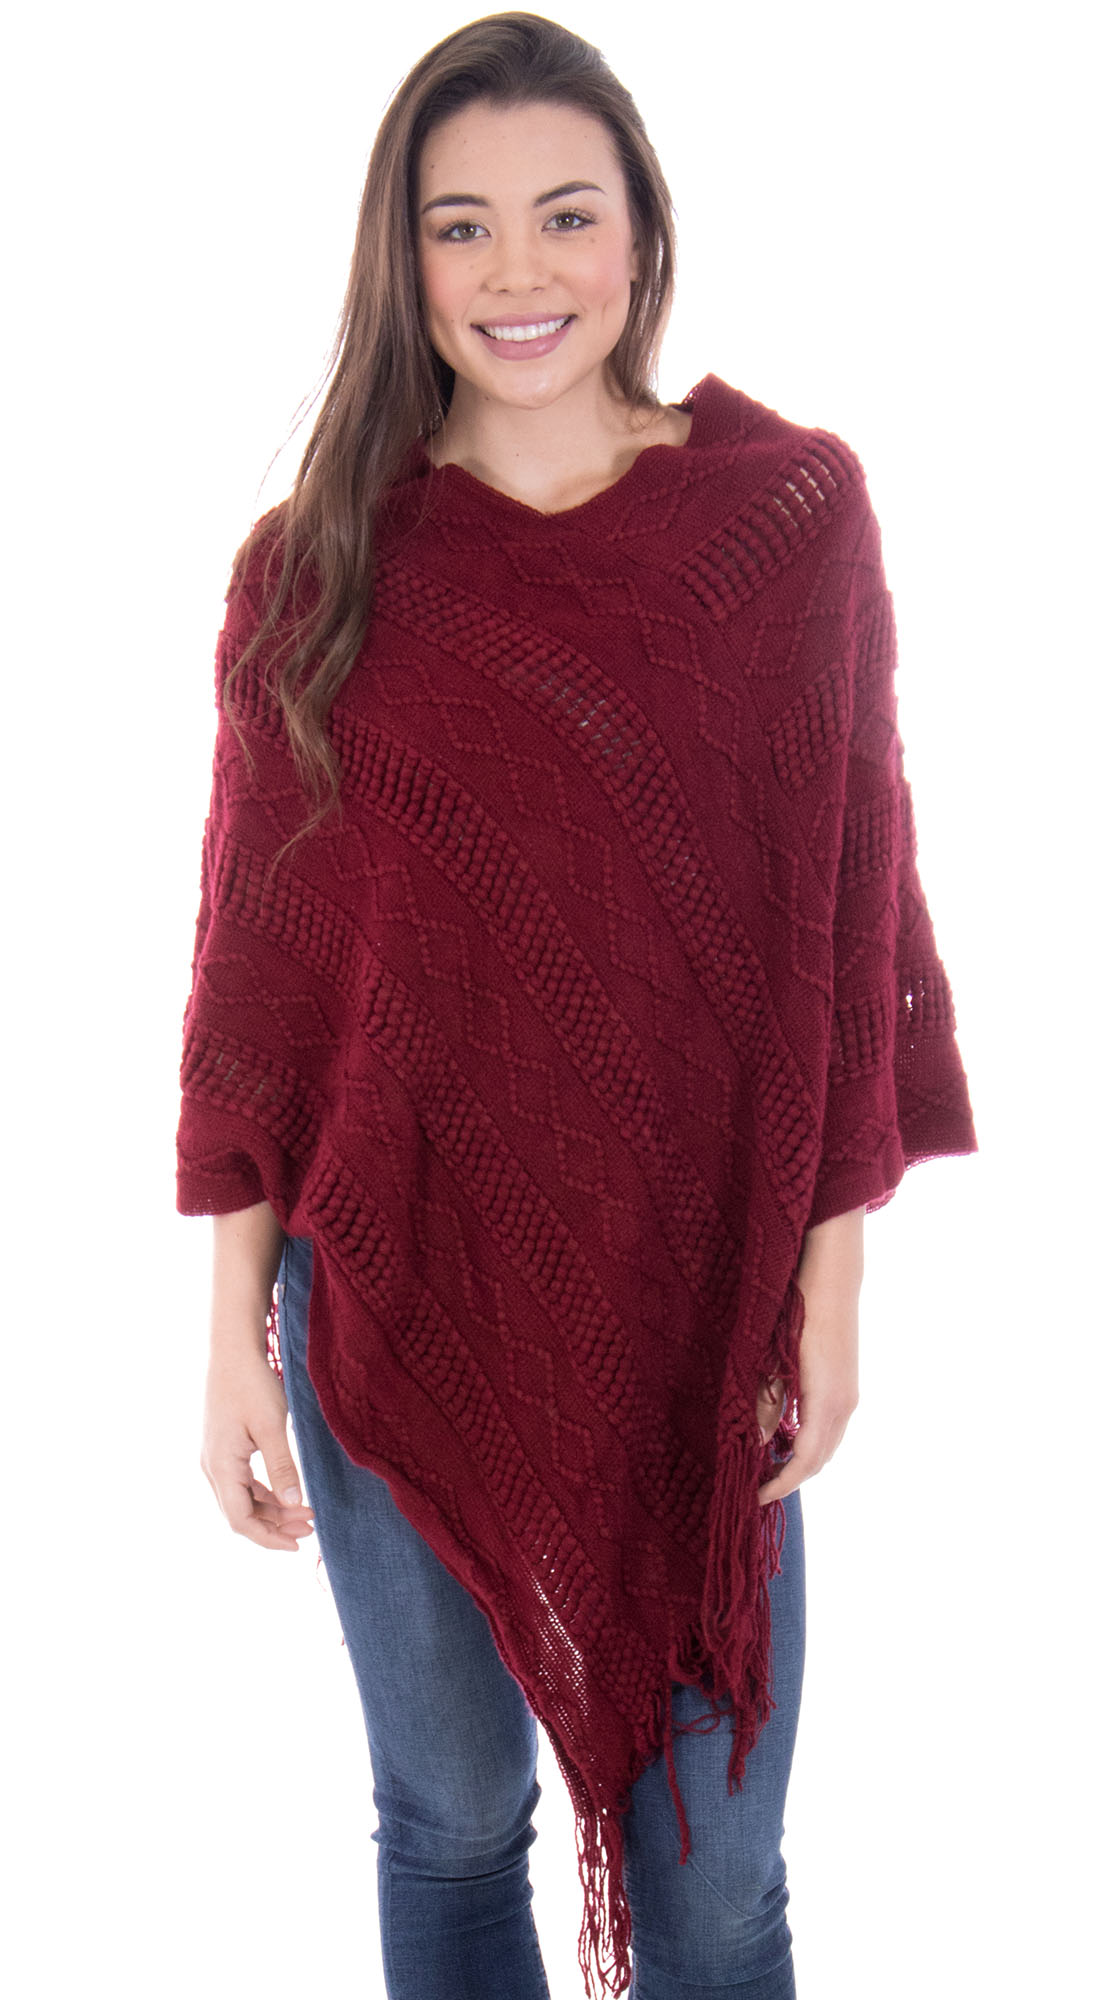 Ponchos for Women Knitted Pullover Sweater Poncho Shawl Burgundy by